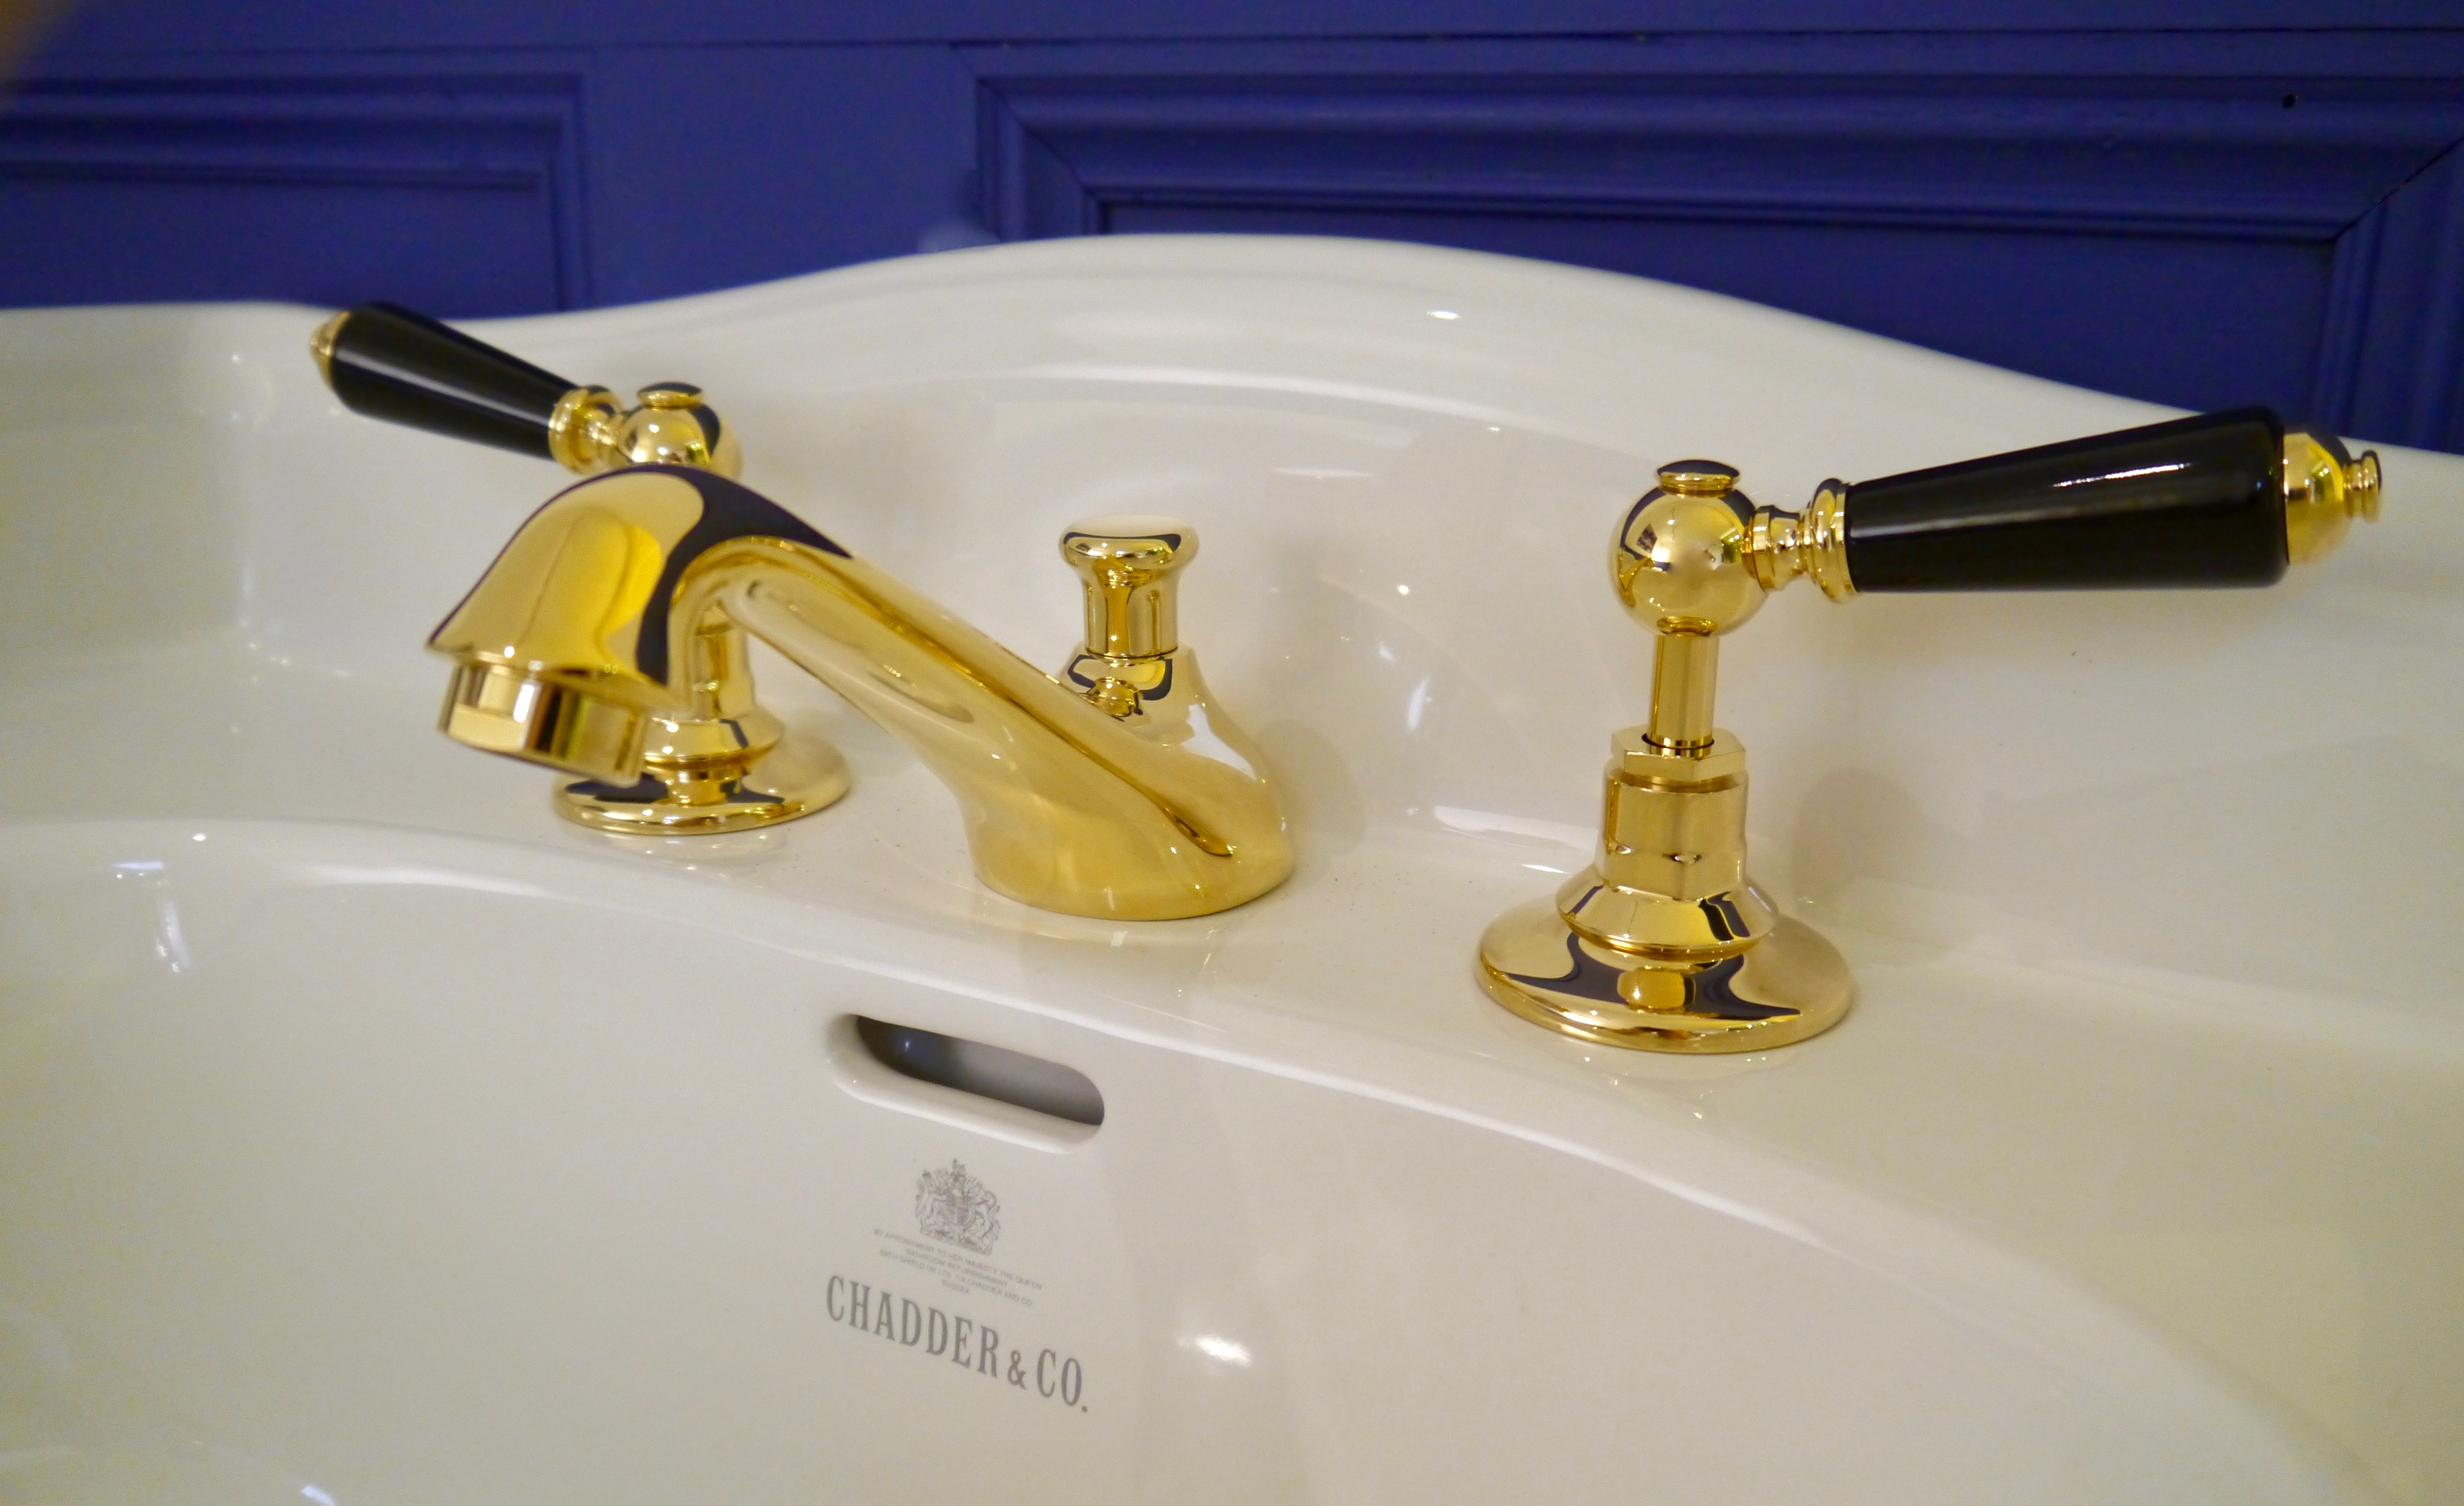 brass basin mixer faucet gold plated sink tap bathroom